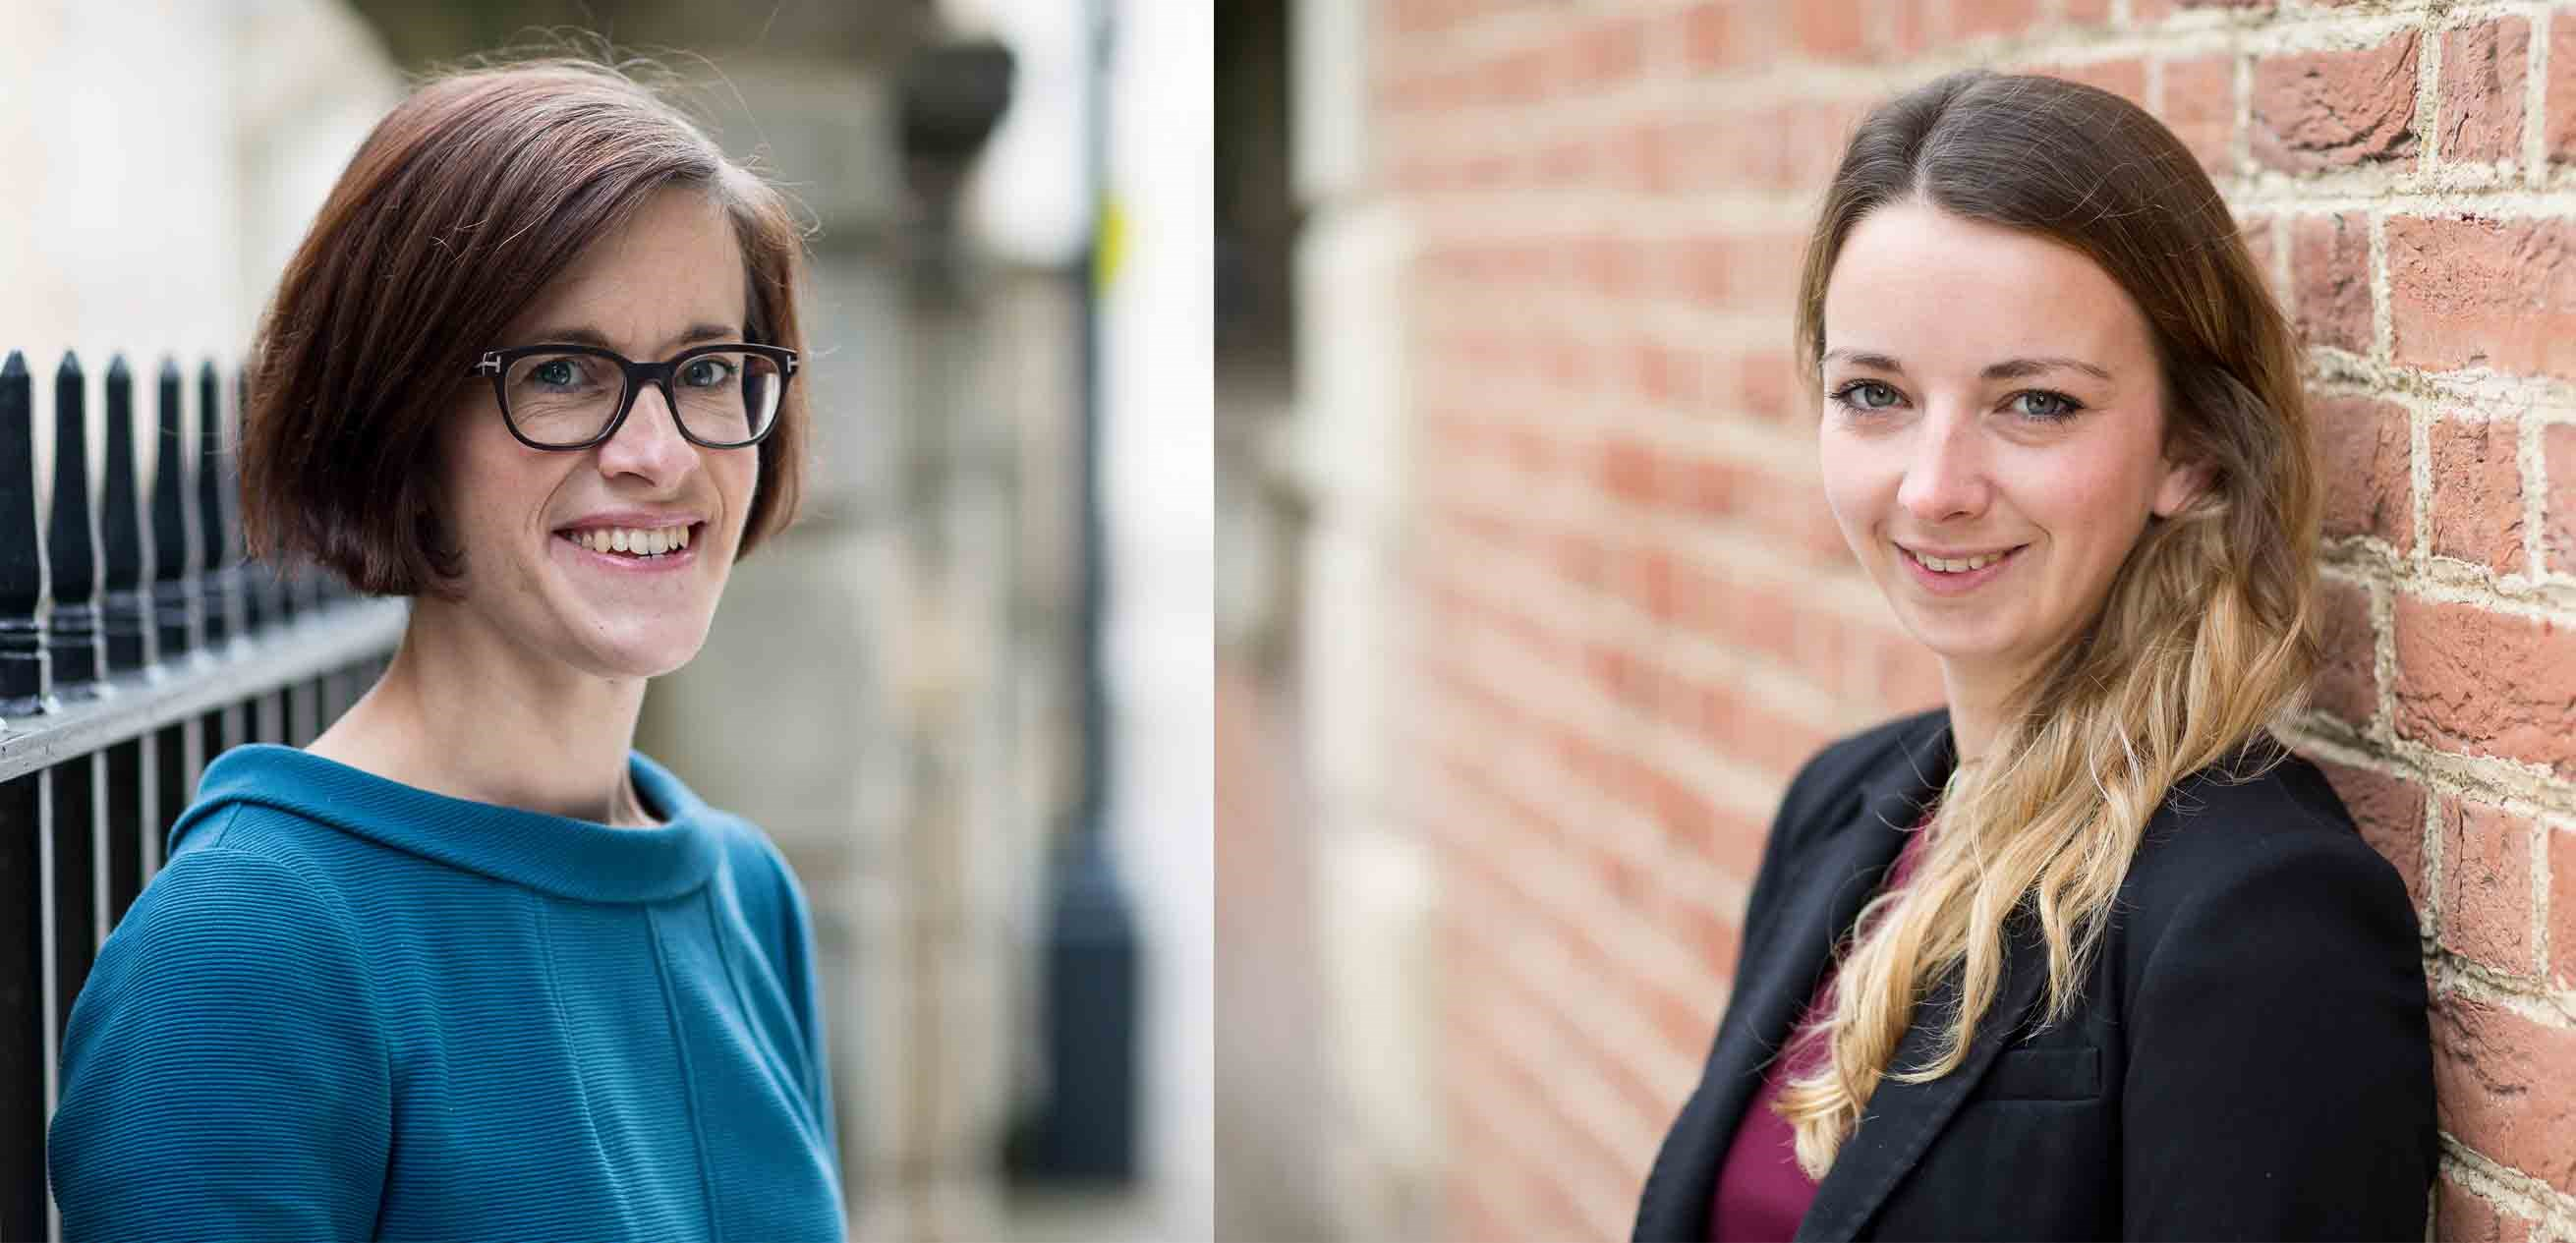 GL Hearn bolsters Bristol team with appointment of two new planners